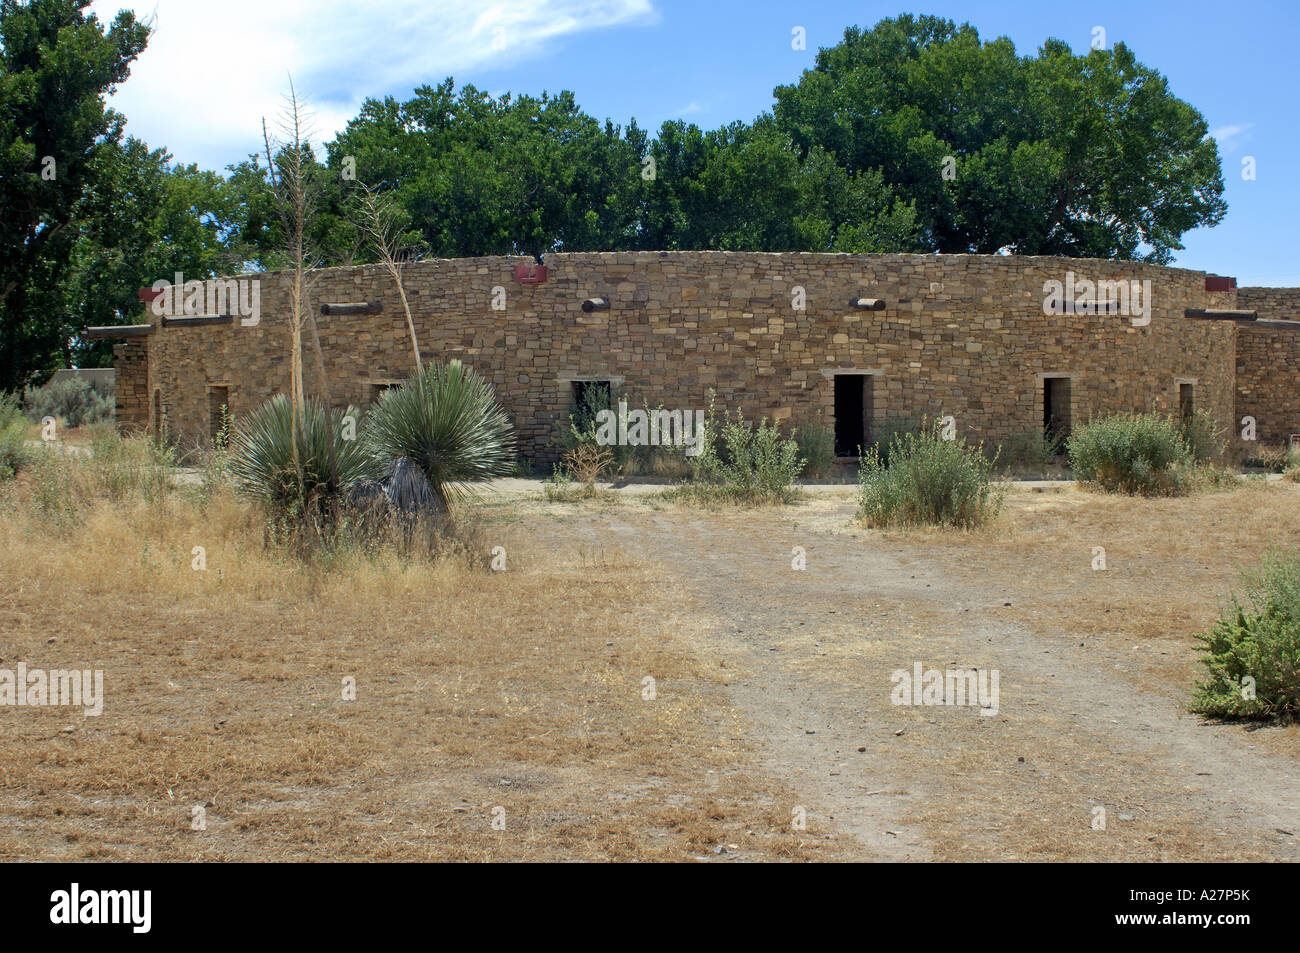 Anasazi/Ancestral Puebloan great kiva reconstructed at Aztec National Monument New Mexico. Digital photograph - Stock Image